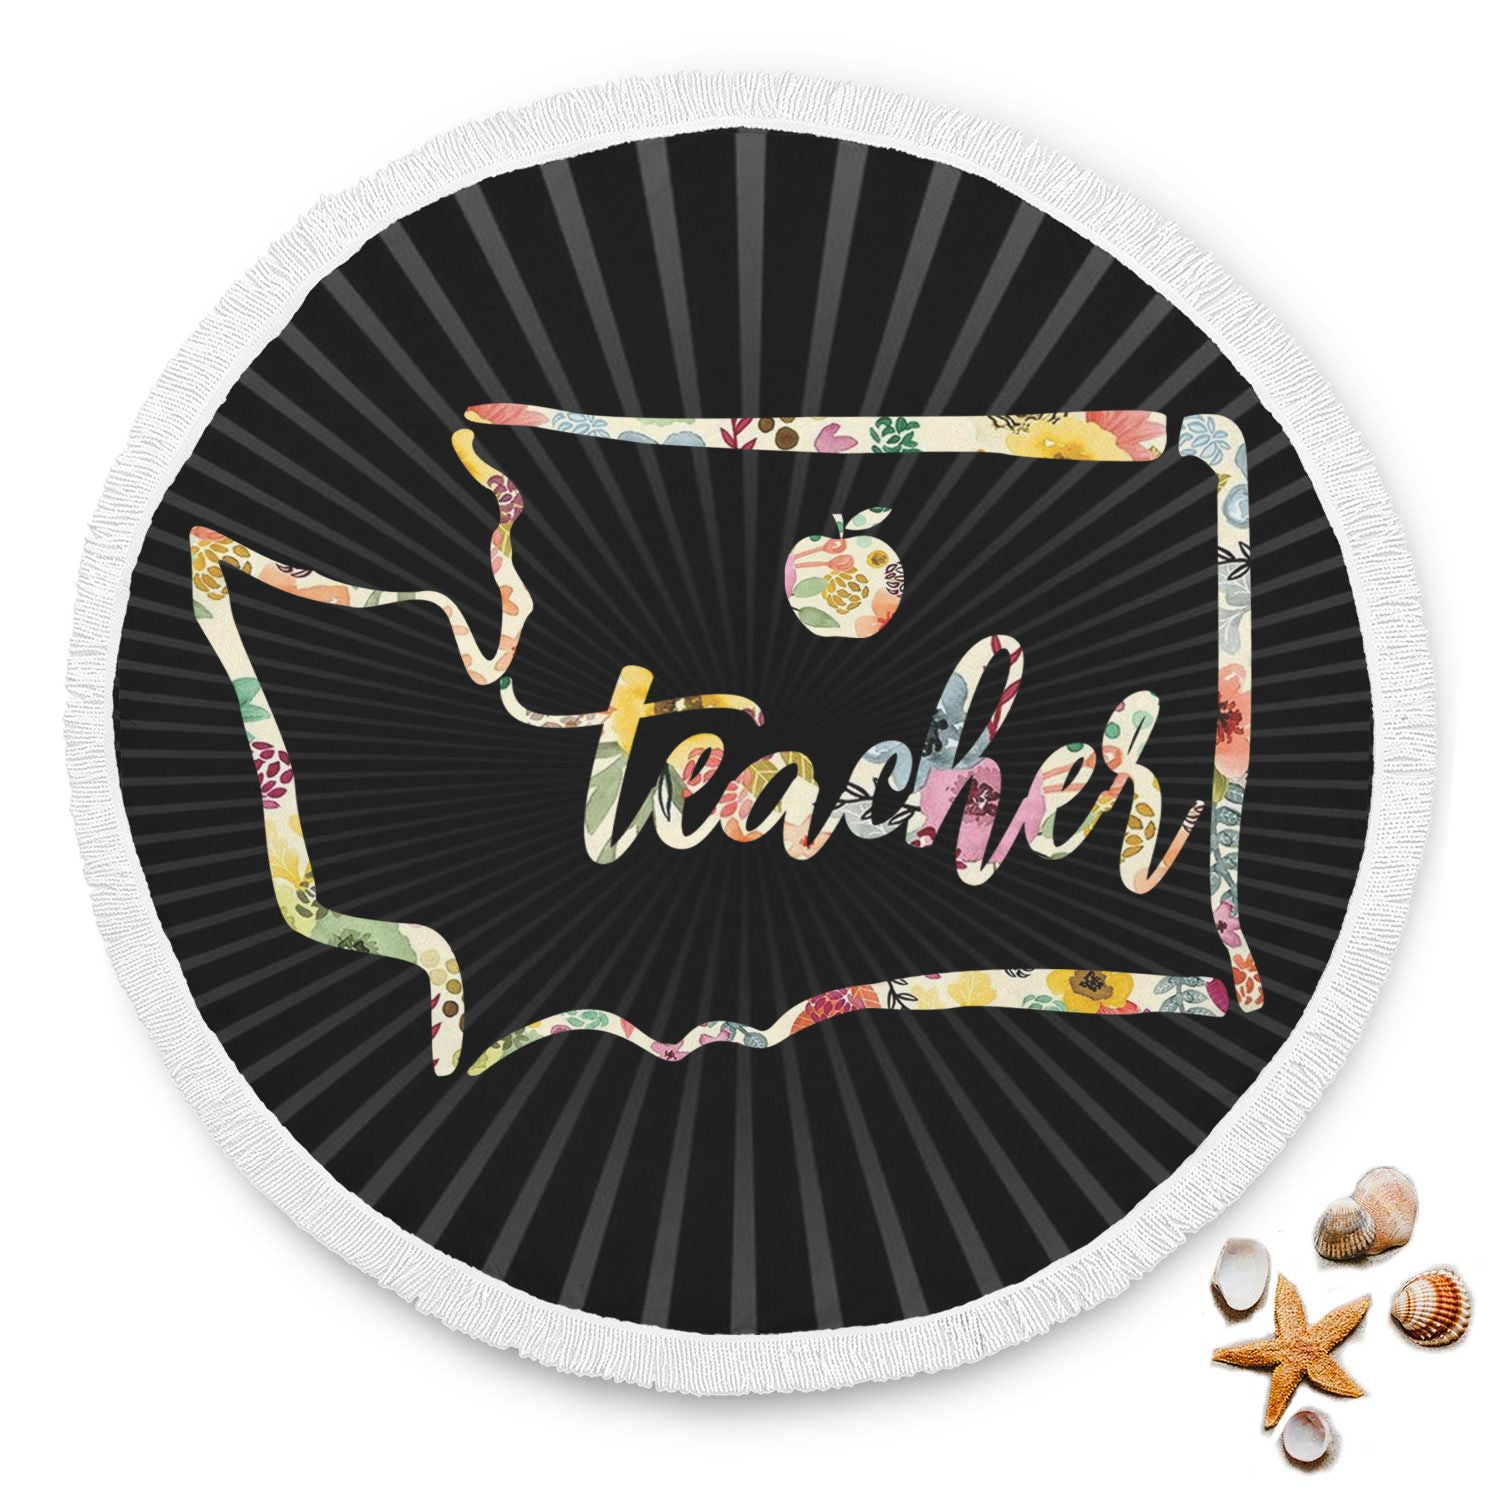 VIRA washington state map for awesome teachers